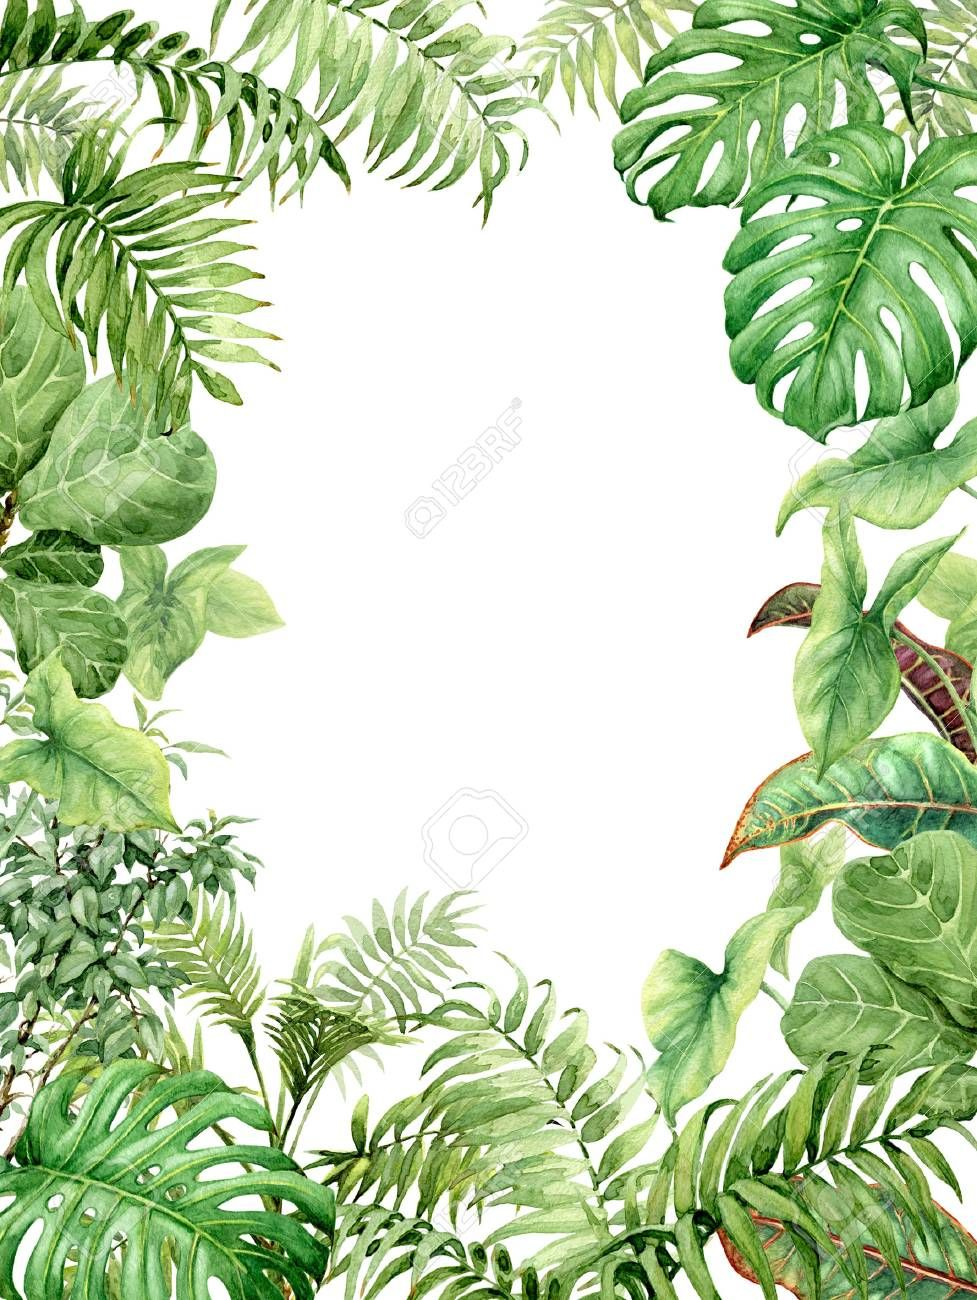 Hand Drawn Branches And Leaves Of Tropical Plants Natural Green Background With Space For Text Watercolor Green Backgrounds Watercolor Plants Tropical Plants